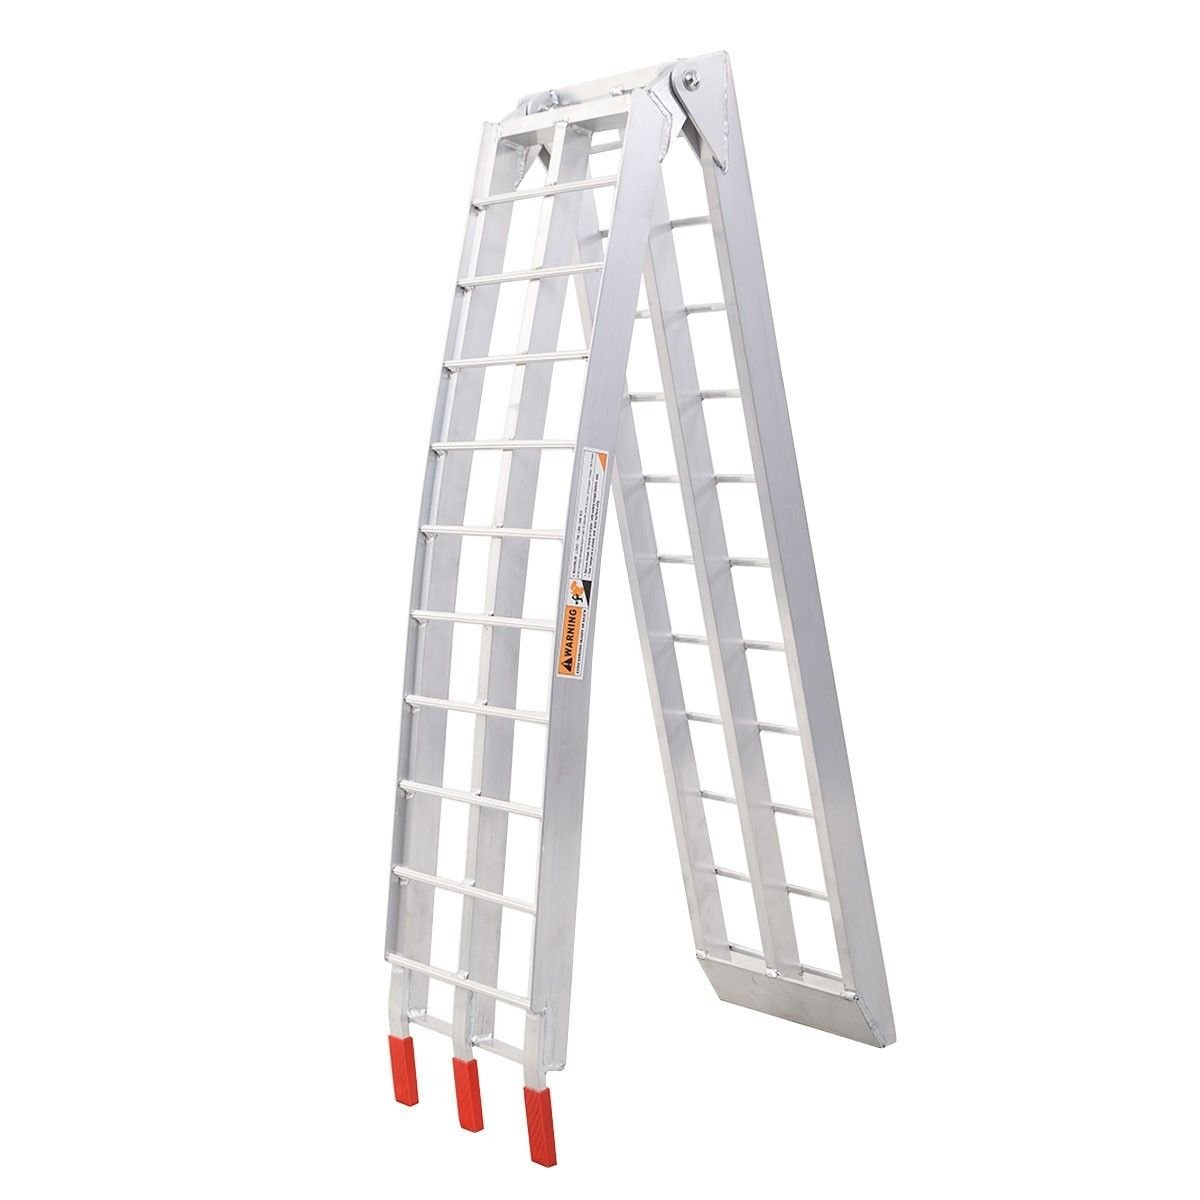 7.5' Heavy Duty Aluminum Motorcycle Bike Ramp Arched Foldable Loading Ramps New by Unknown (Image #1)